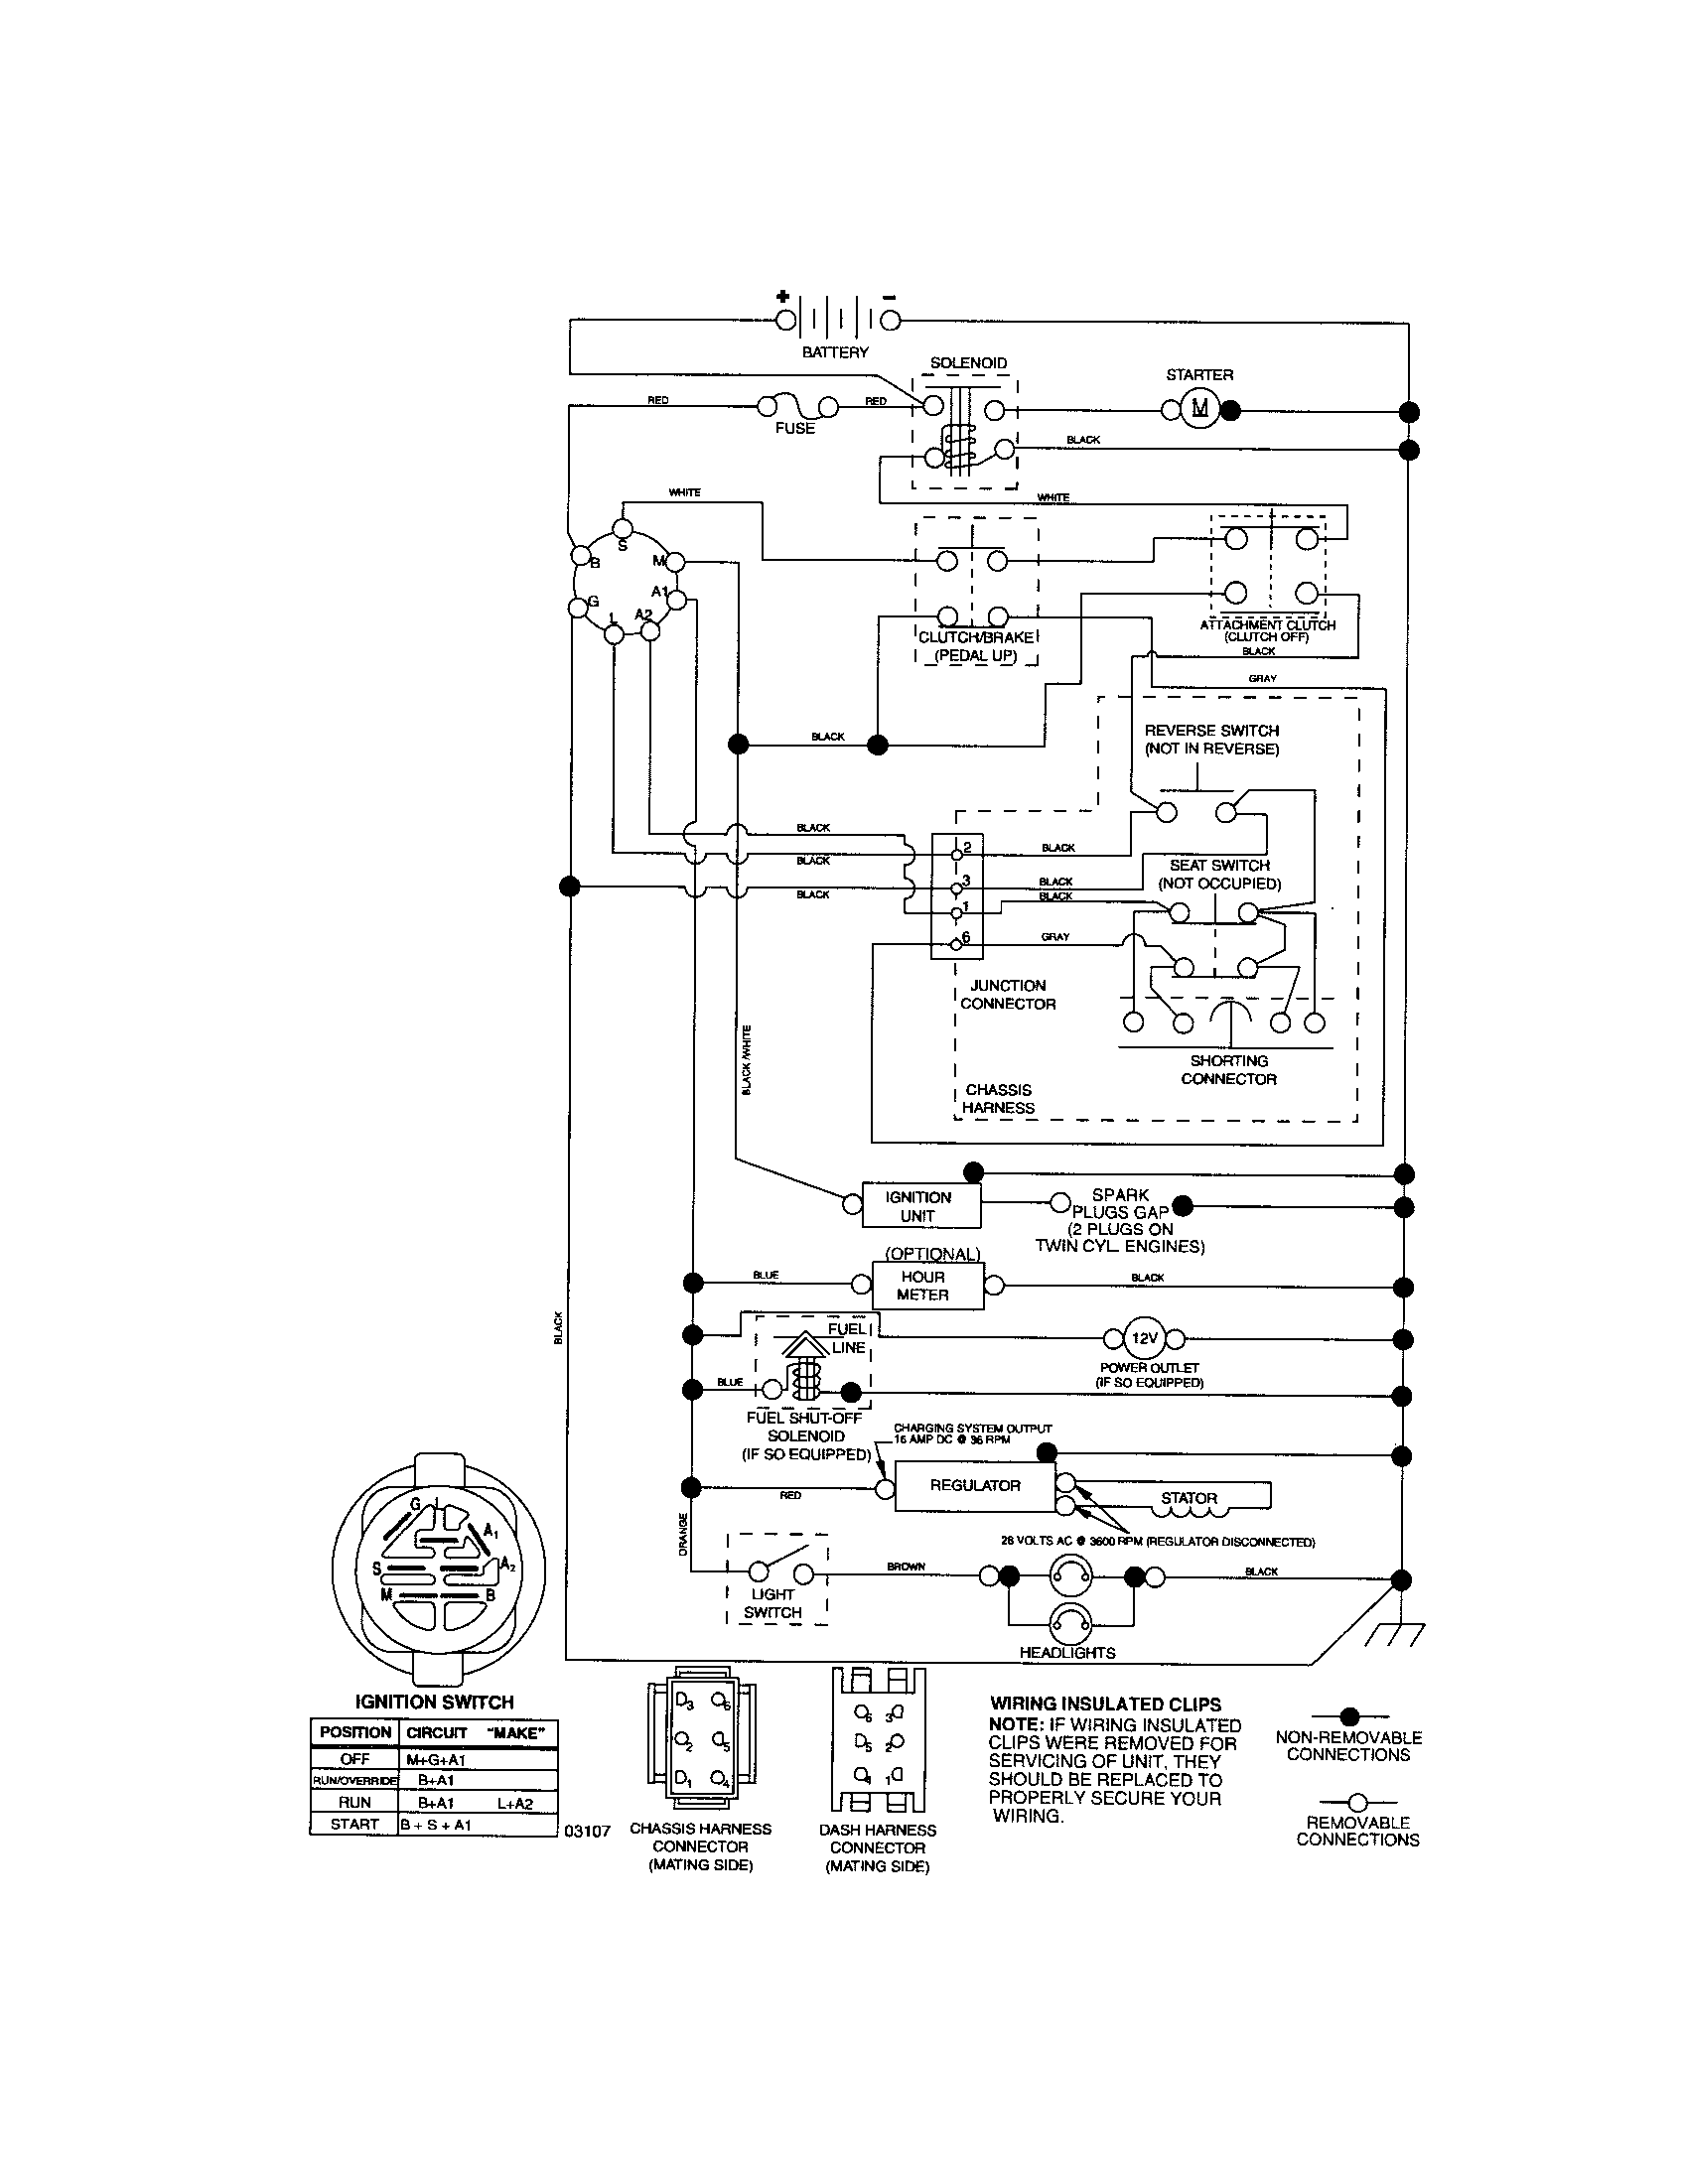 6af5f1447fd13c8443376822ddc1e105 craftsman riding mower electrical diagram wiring diagram murray lawn mower wiring diagram at mifinder.co